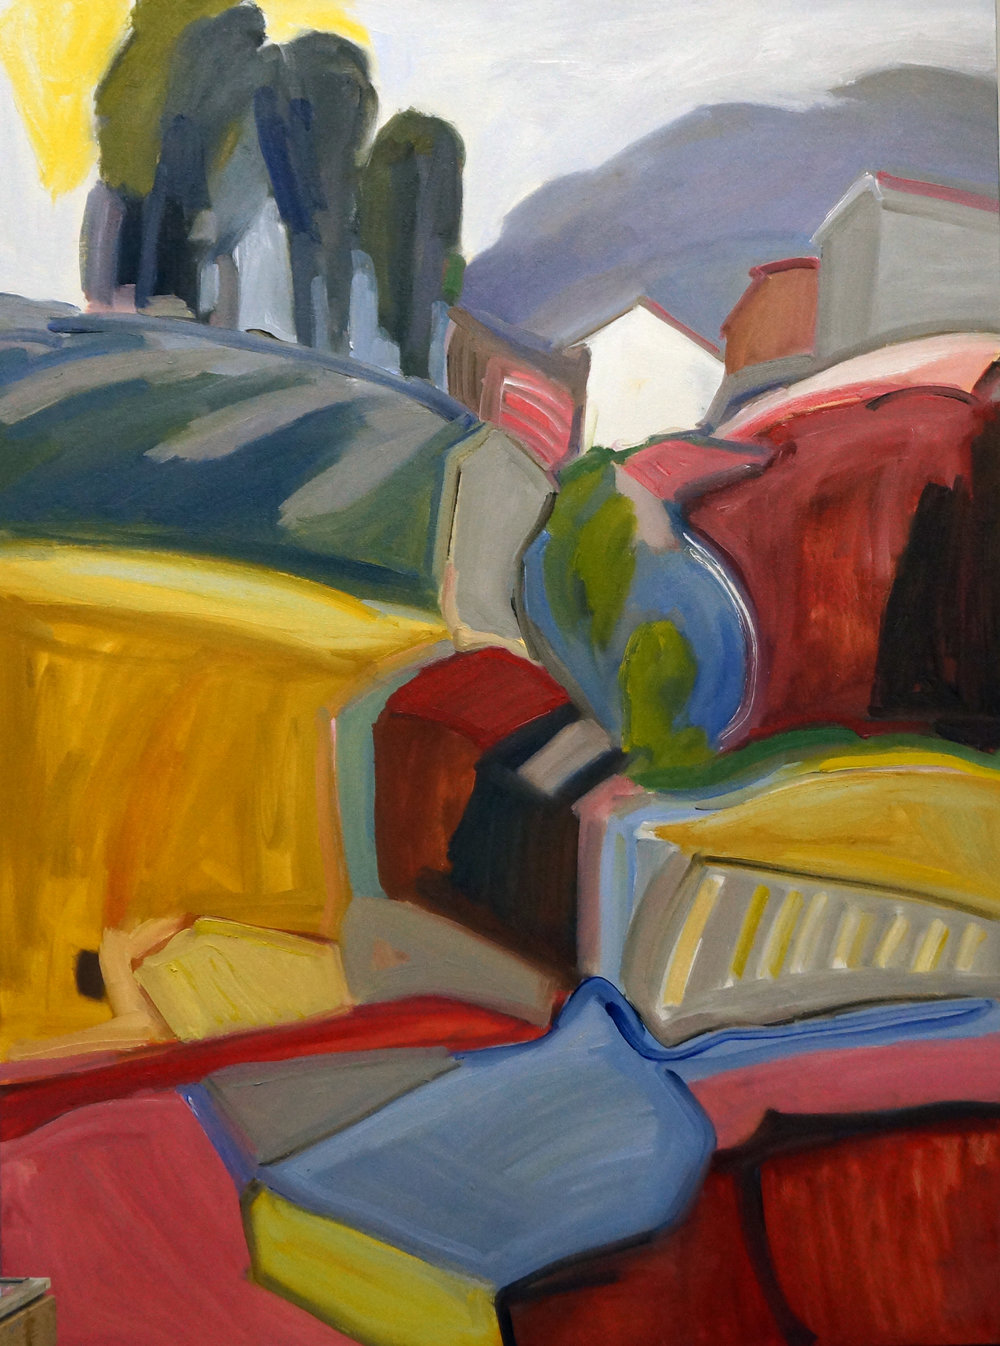 House on the Hill, 36x48, Oil on Canvas